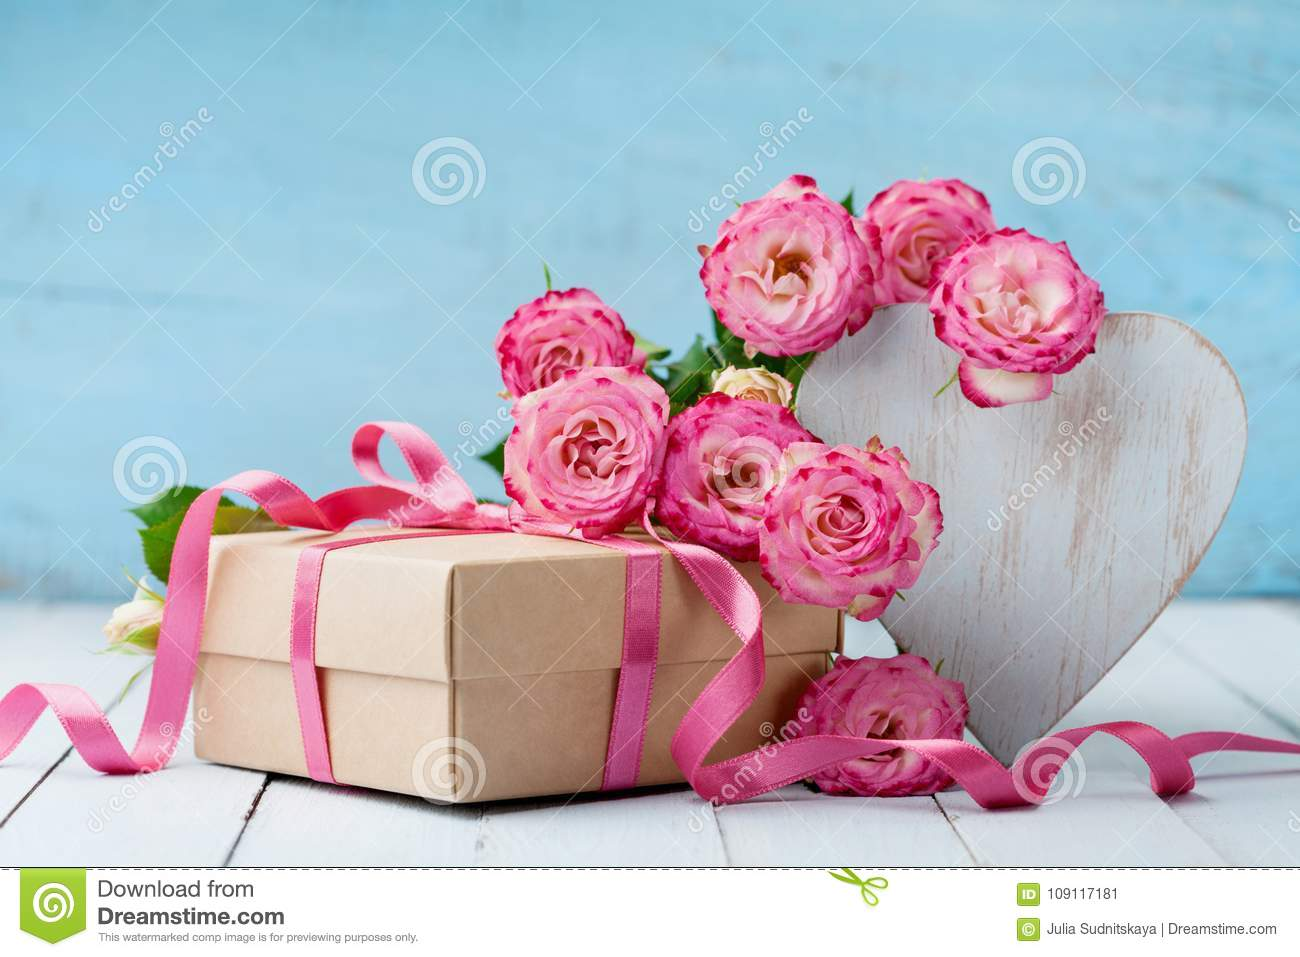 Wooden Heart Pink Rose Flowers And Gift Box On Turquoise